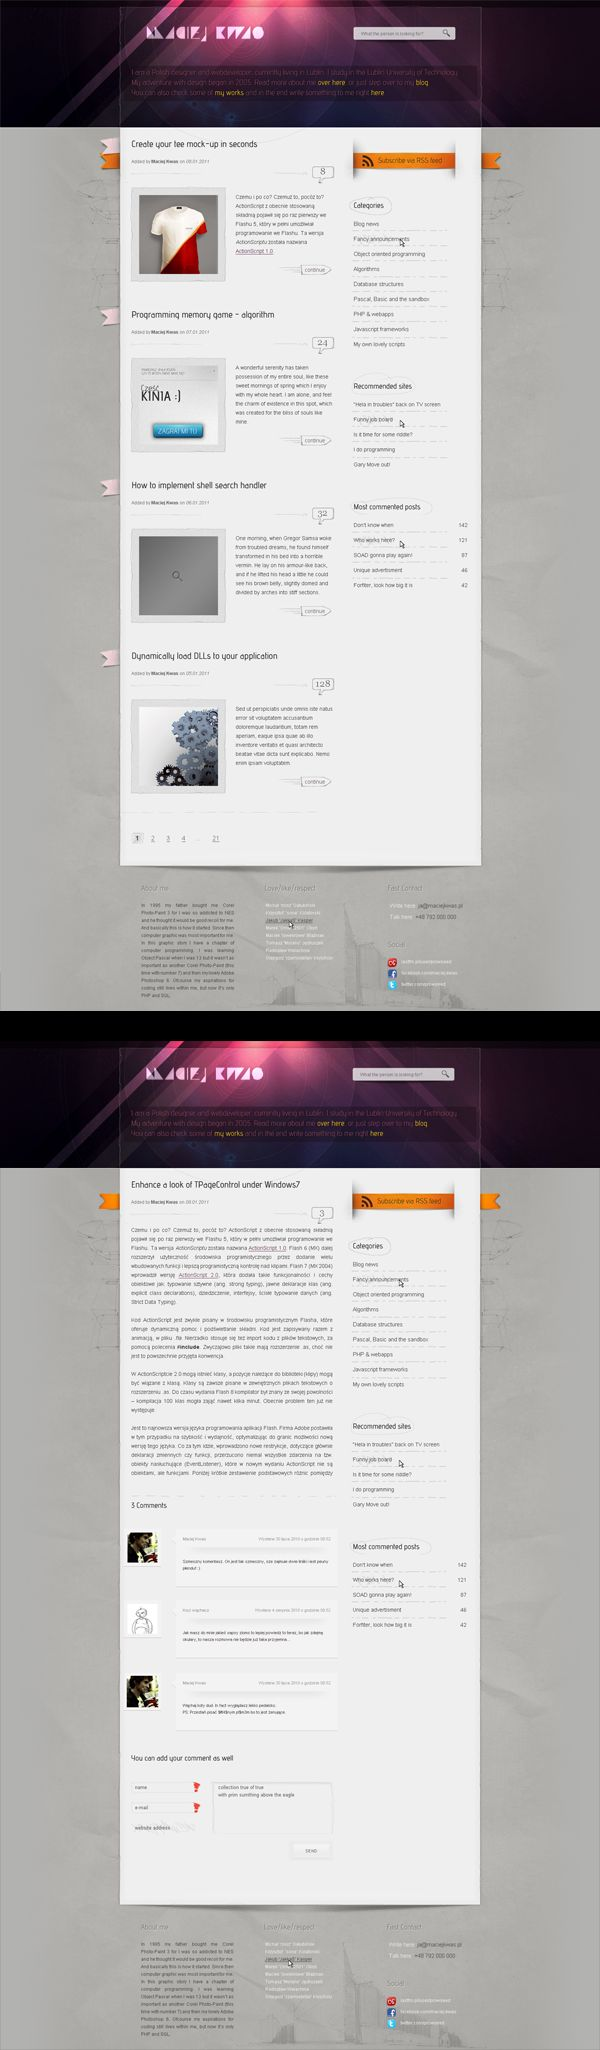 143 best adobe photoshop tutuorials how to images on pinterest complete guide to creating a blog website layout adobephotoshop adobe photoshop baditri Image collections